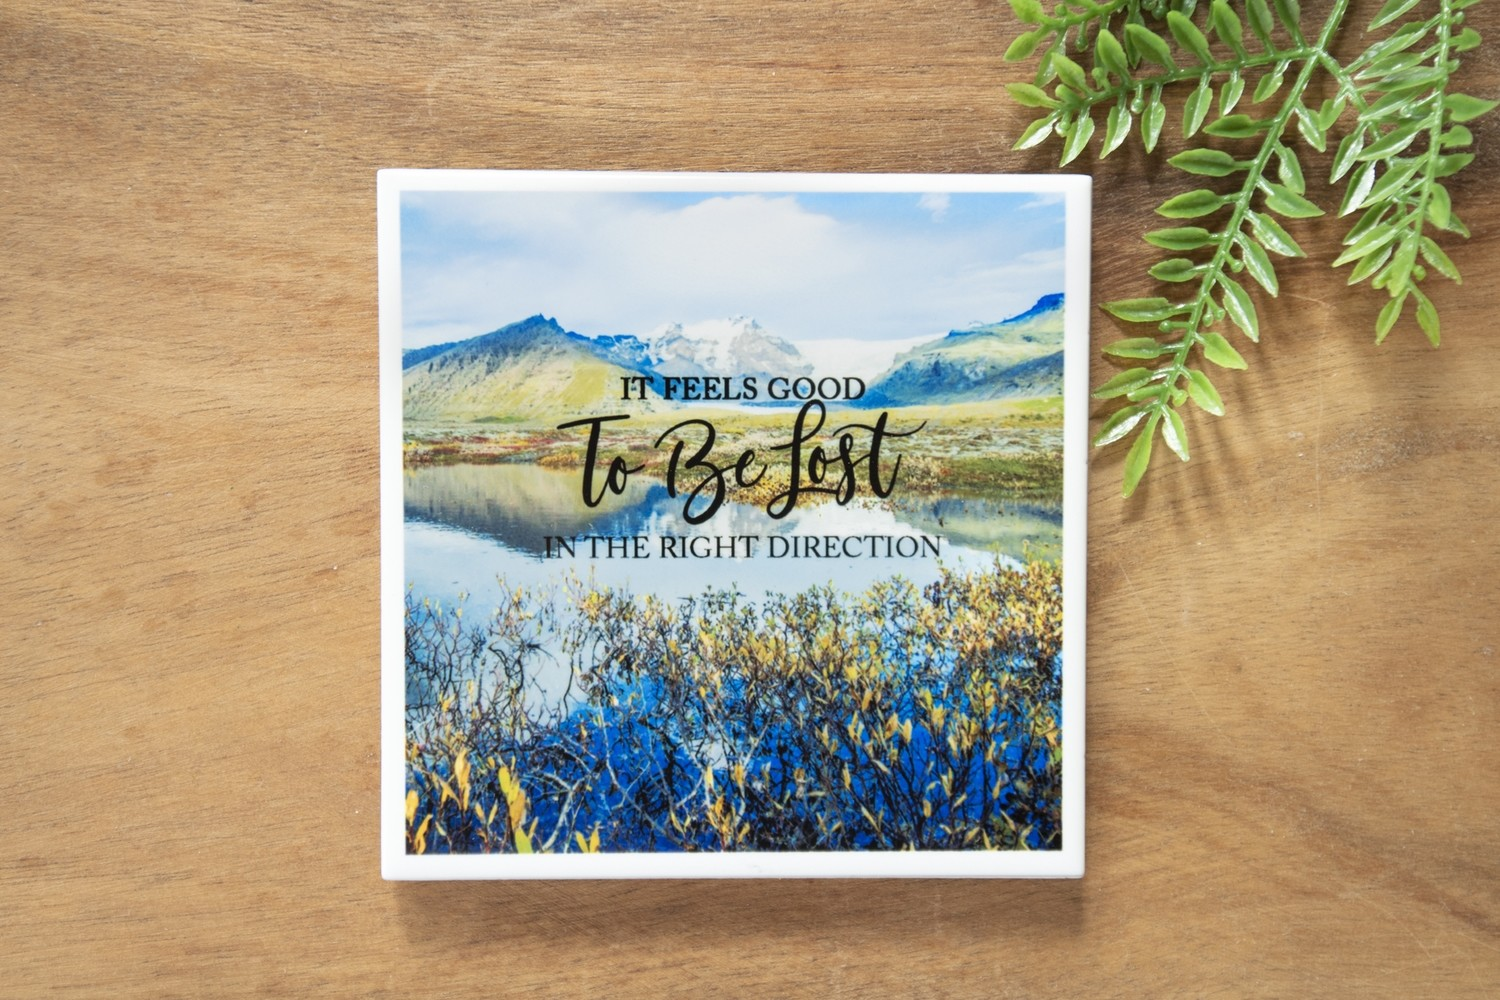 It Feels Good To Be Lost In The Right Direction-Nature Photo Coaster